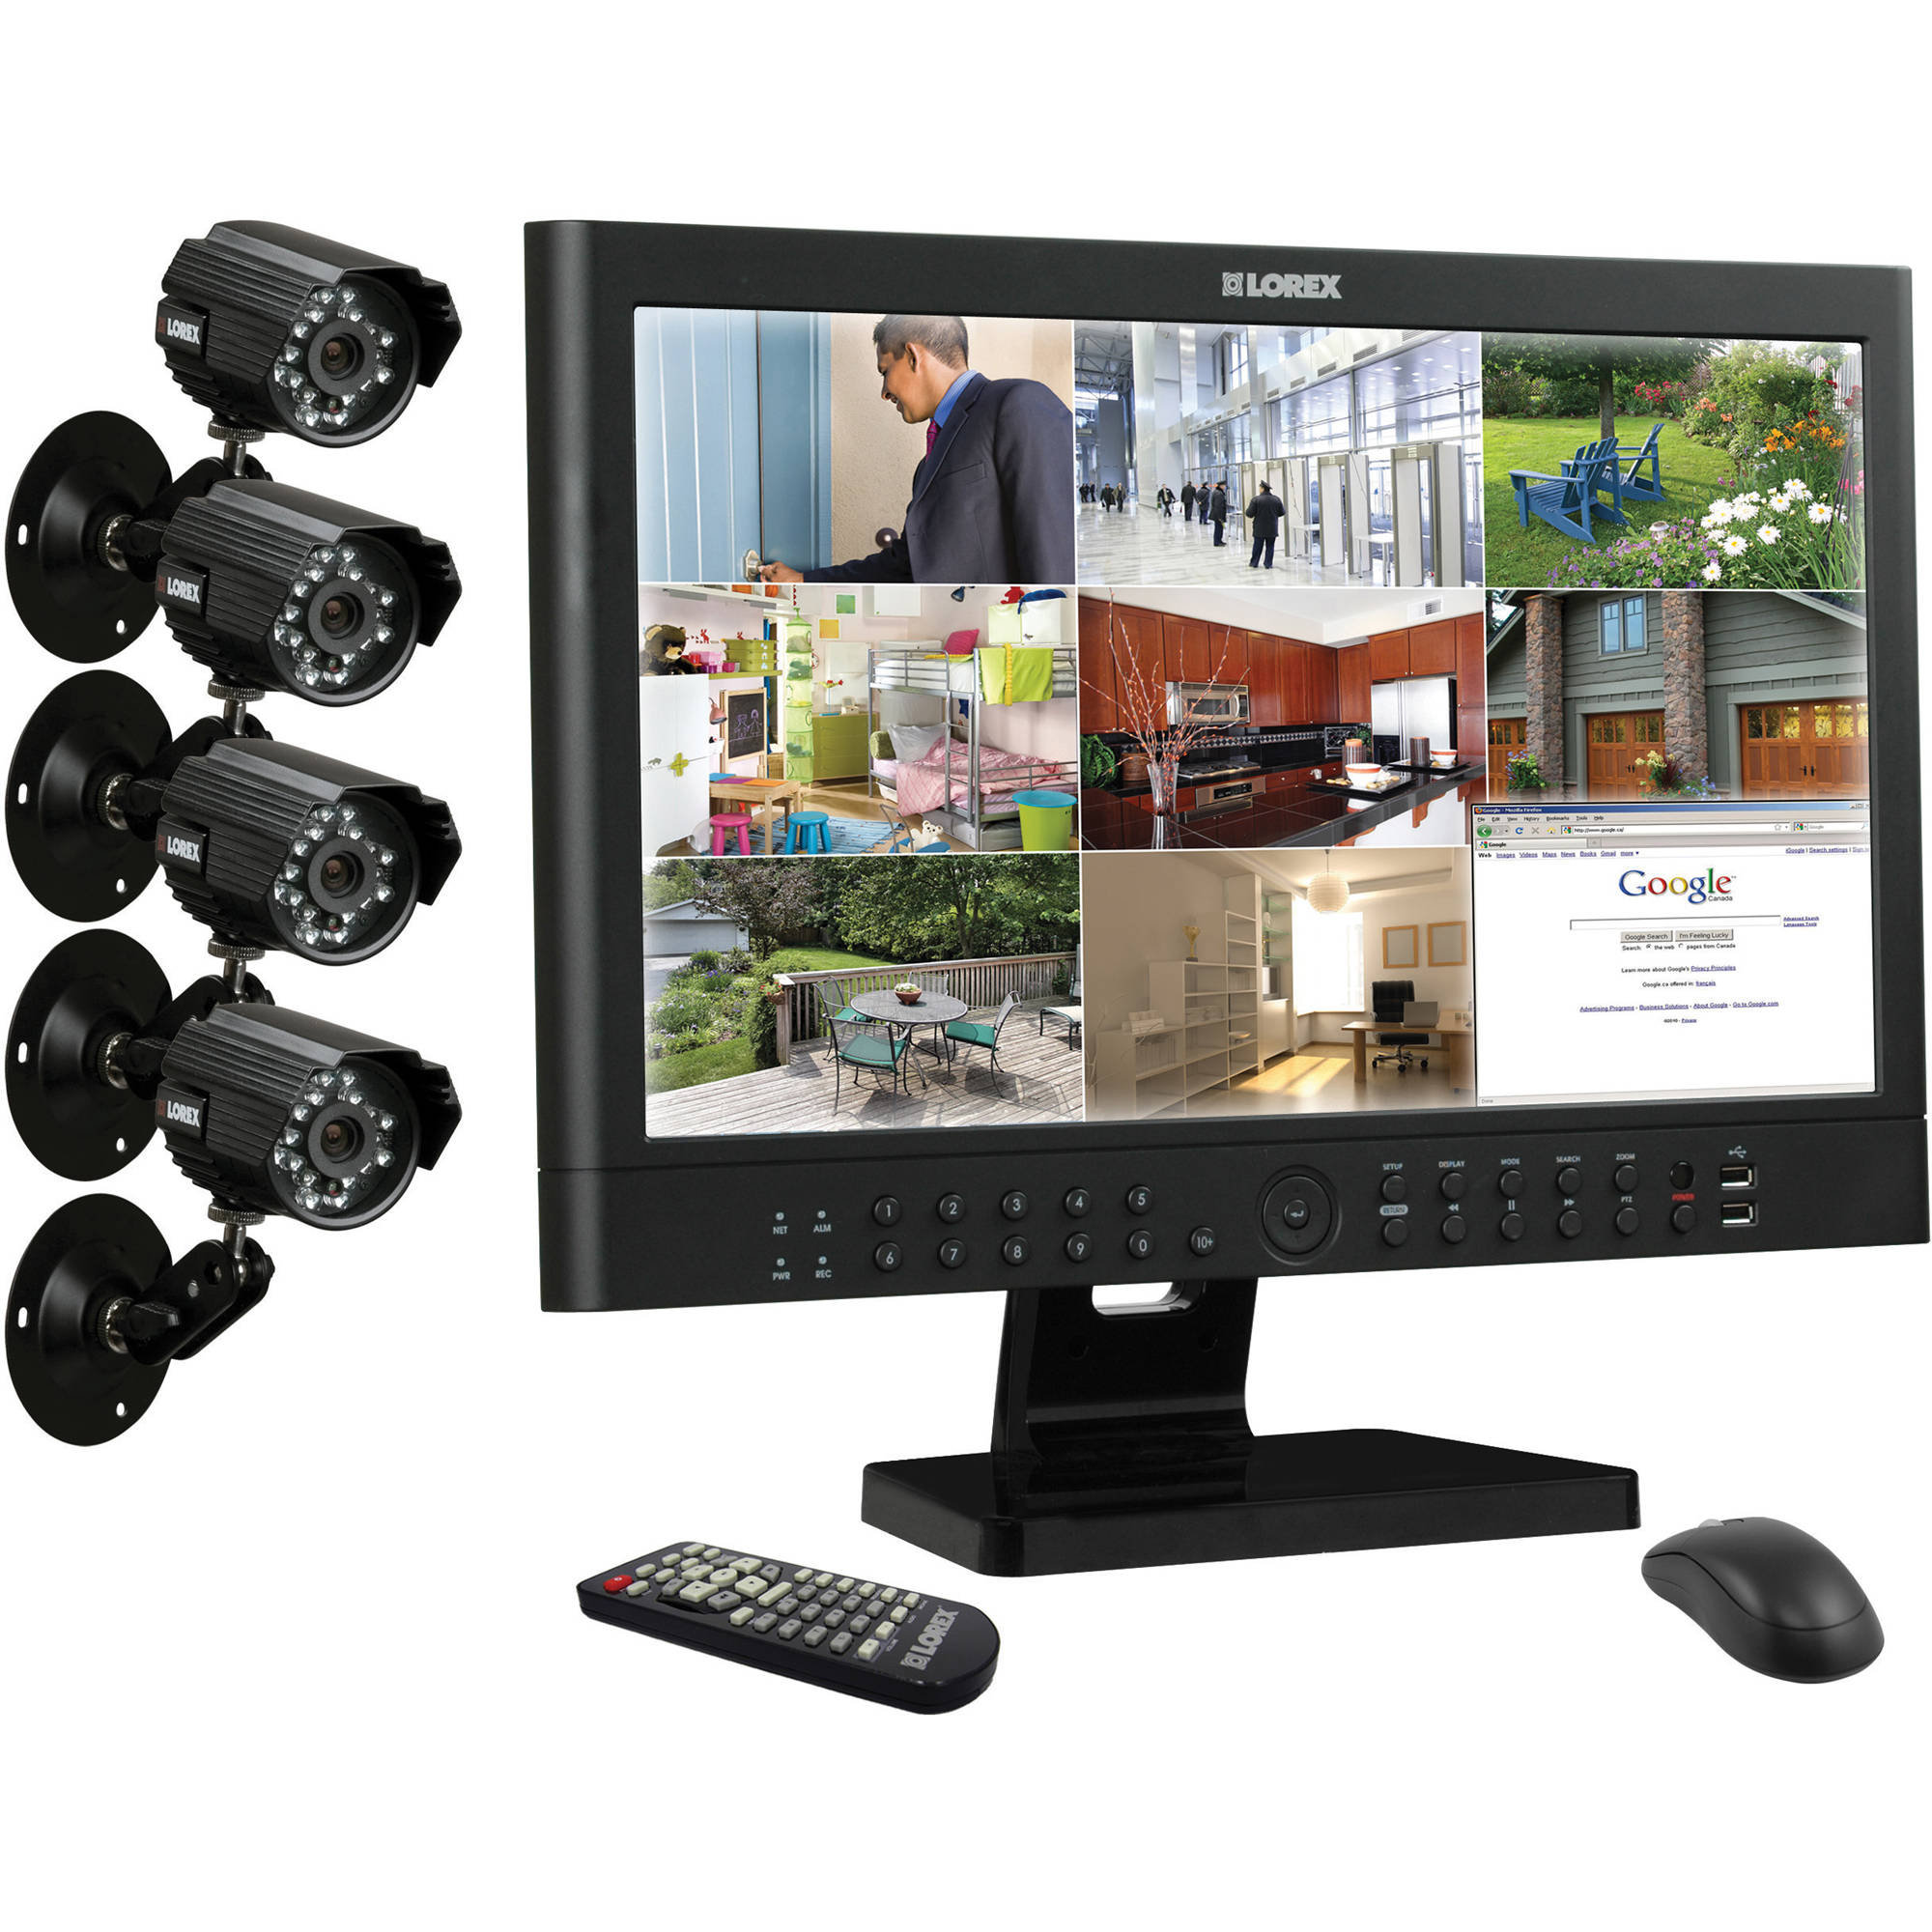 REMOTE SECURITY CAMERA